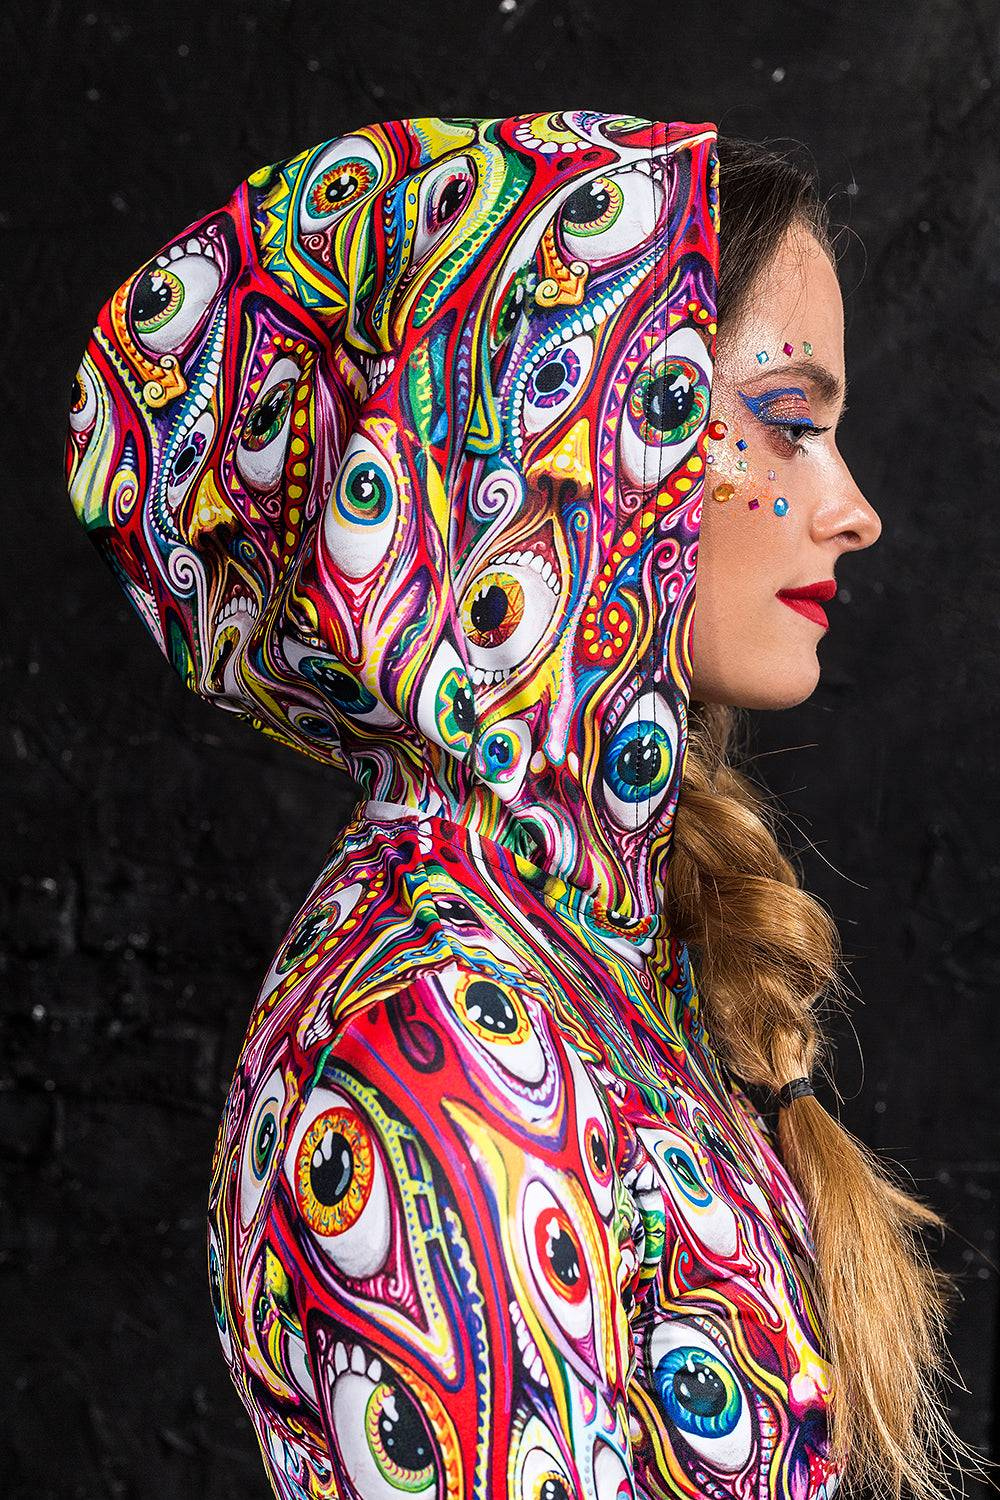 BADINKA Festival Clothing Women - Rave Clothing Woman - Festival Outfits - Rave Outfits -  Trippy Ey